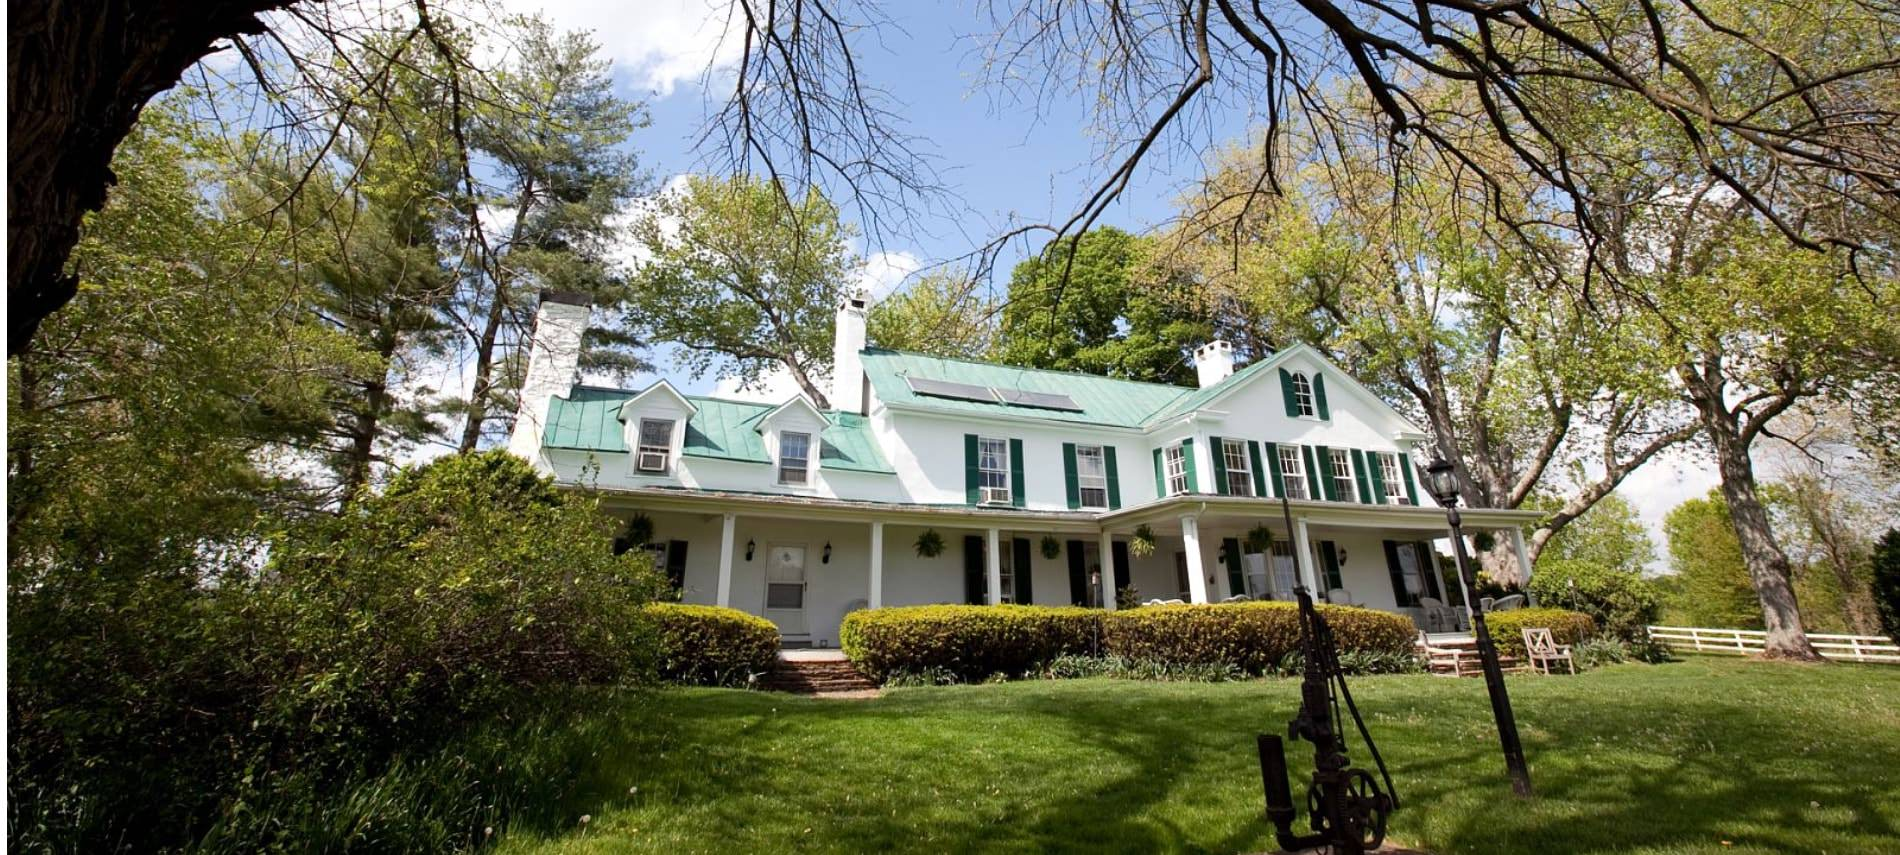 Exterior view of property painted white with dark shutters surrounded by a large green lawn, shrubs, and trees